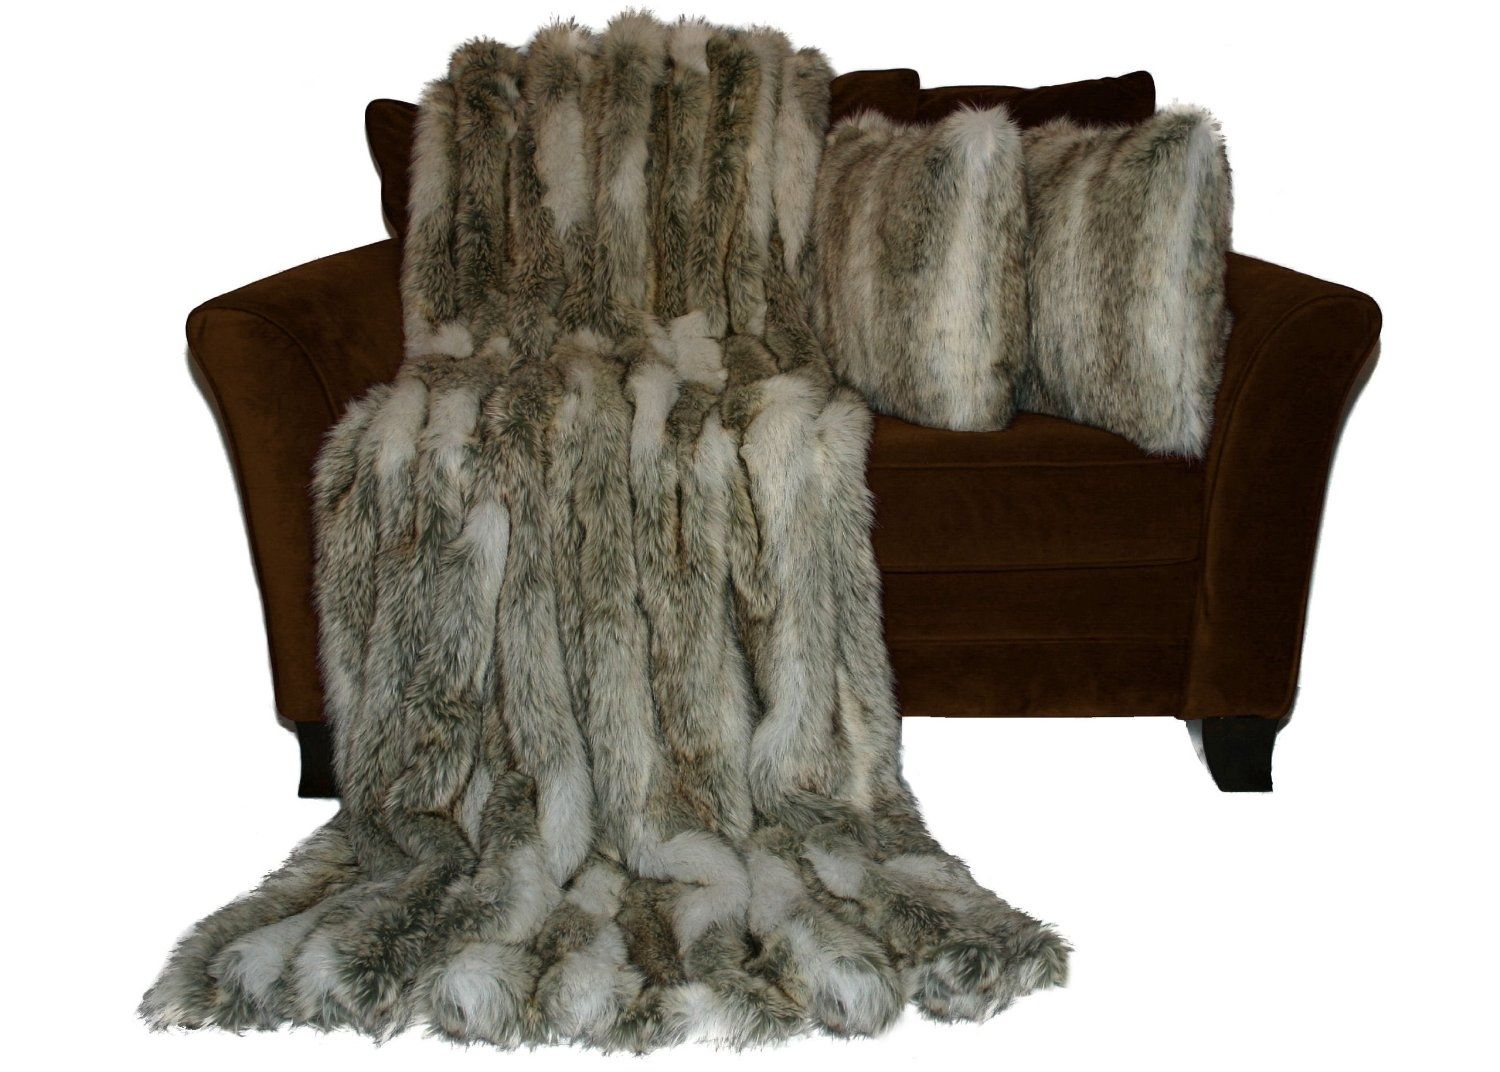 Faux Fur Throw And Pillow Set : Custom Premium 60x84 Canadian Fox Stone Faux Fur Throw Blanket And 18x18 Decorative Pillow Set ...